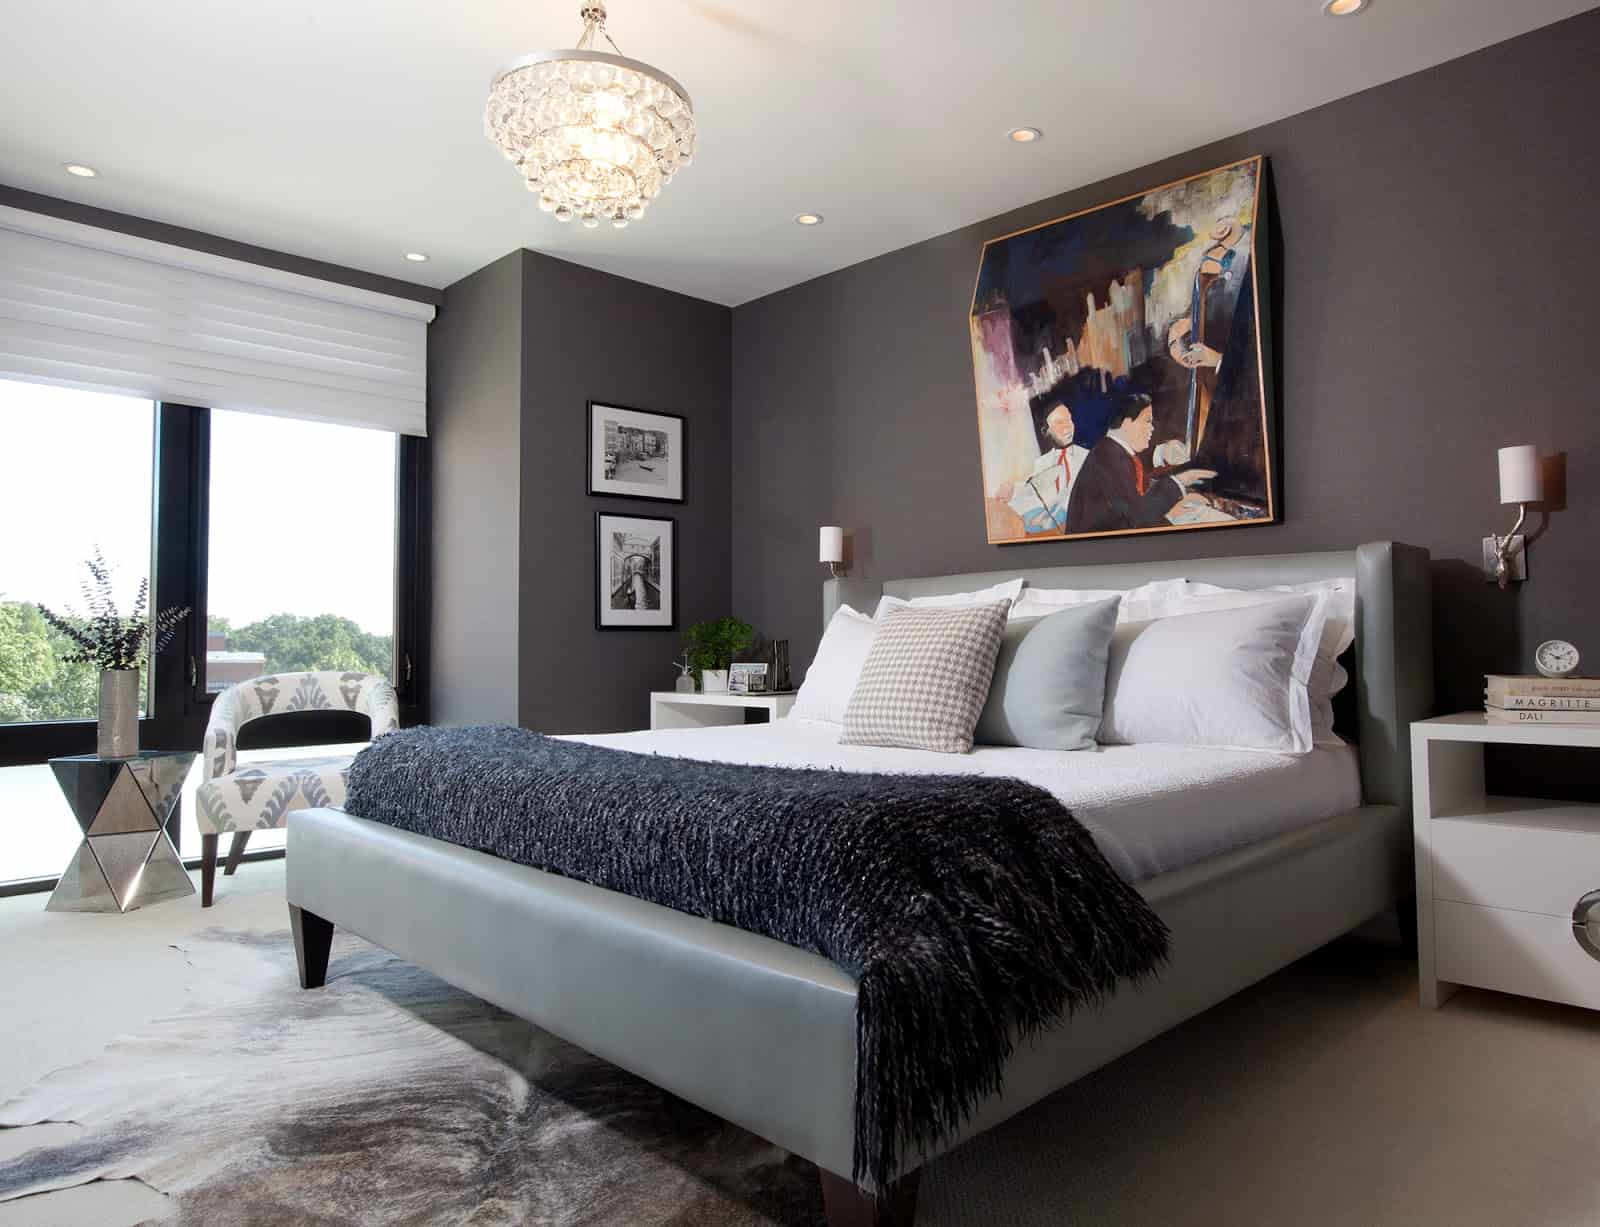 Fabulous-Gray-Bedroom-Master-Bedroom-Charcoal-Dark-Gray-Wall-Paper-Upholstered-Modern-Platform-Bed-Amy-Elbaum-Designs-Cococozy-Grey-Bedroom-With-Dark-Furniture-About-Gray-Bedroom